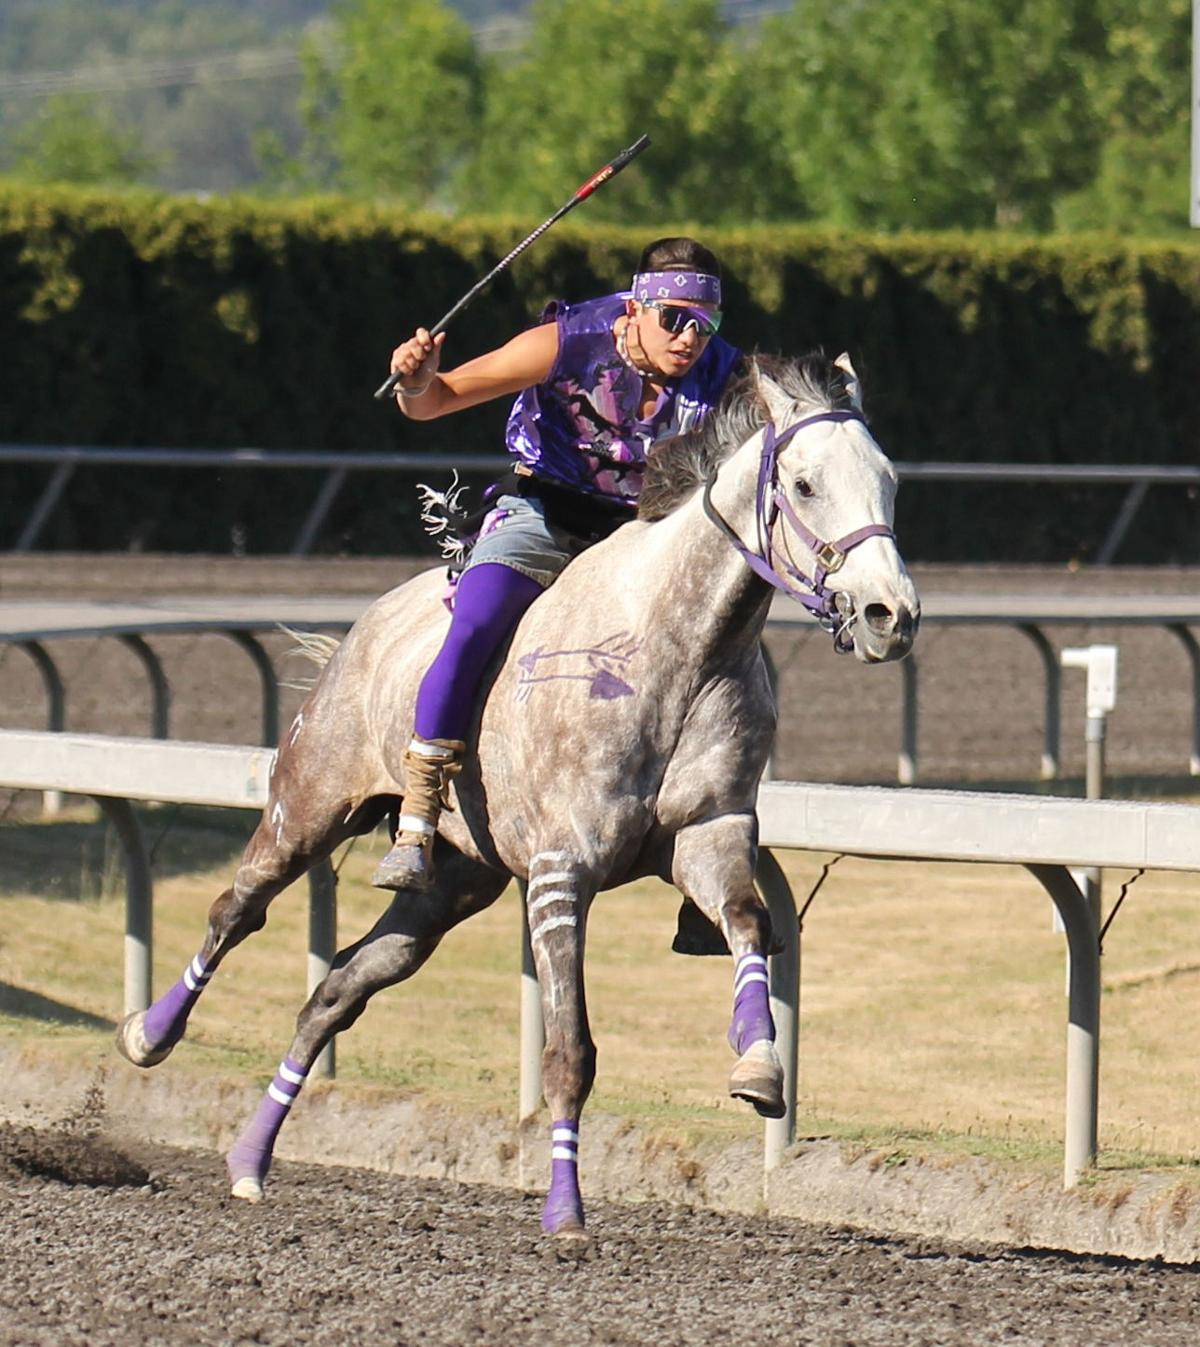 Scott Abrahamson (Colville tribal member) jockey for Abrahamson Relay at the Muckleshoot Gold Cup (June 14-16) at Emerald Downs Racetrack in Auburn